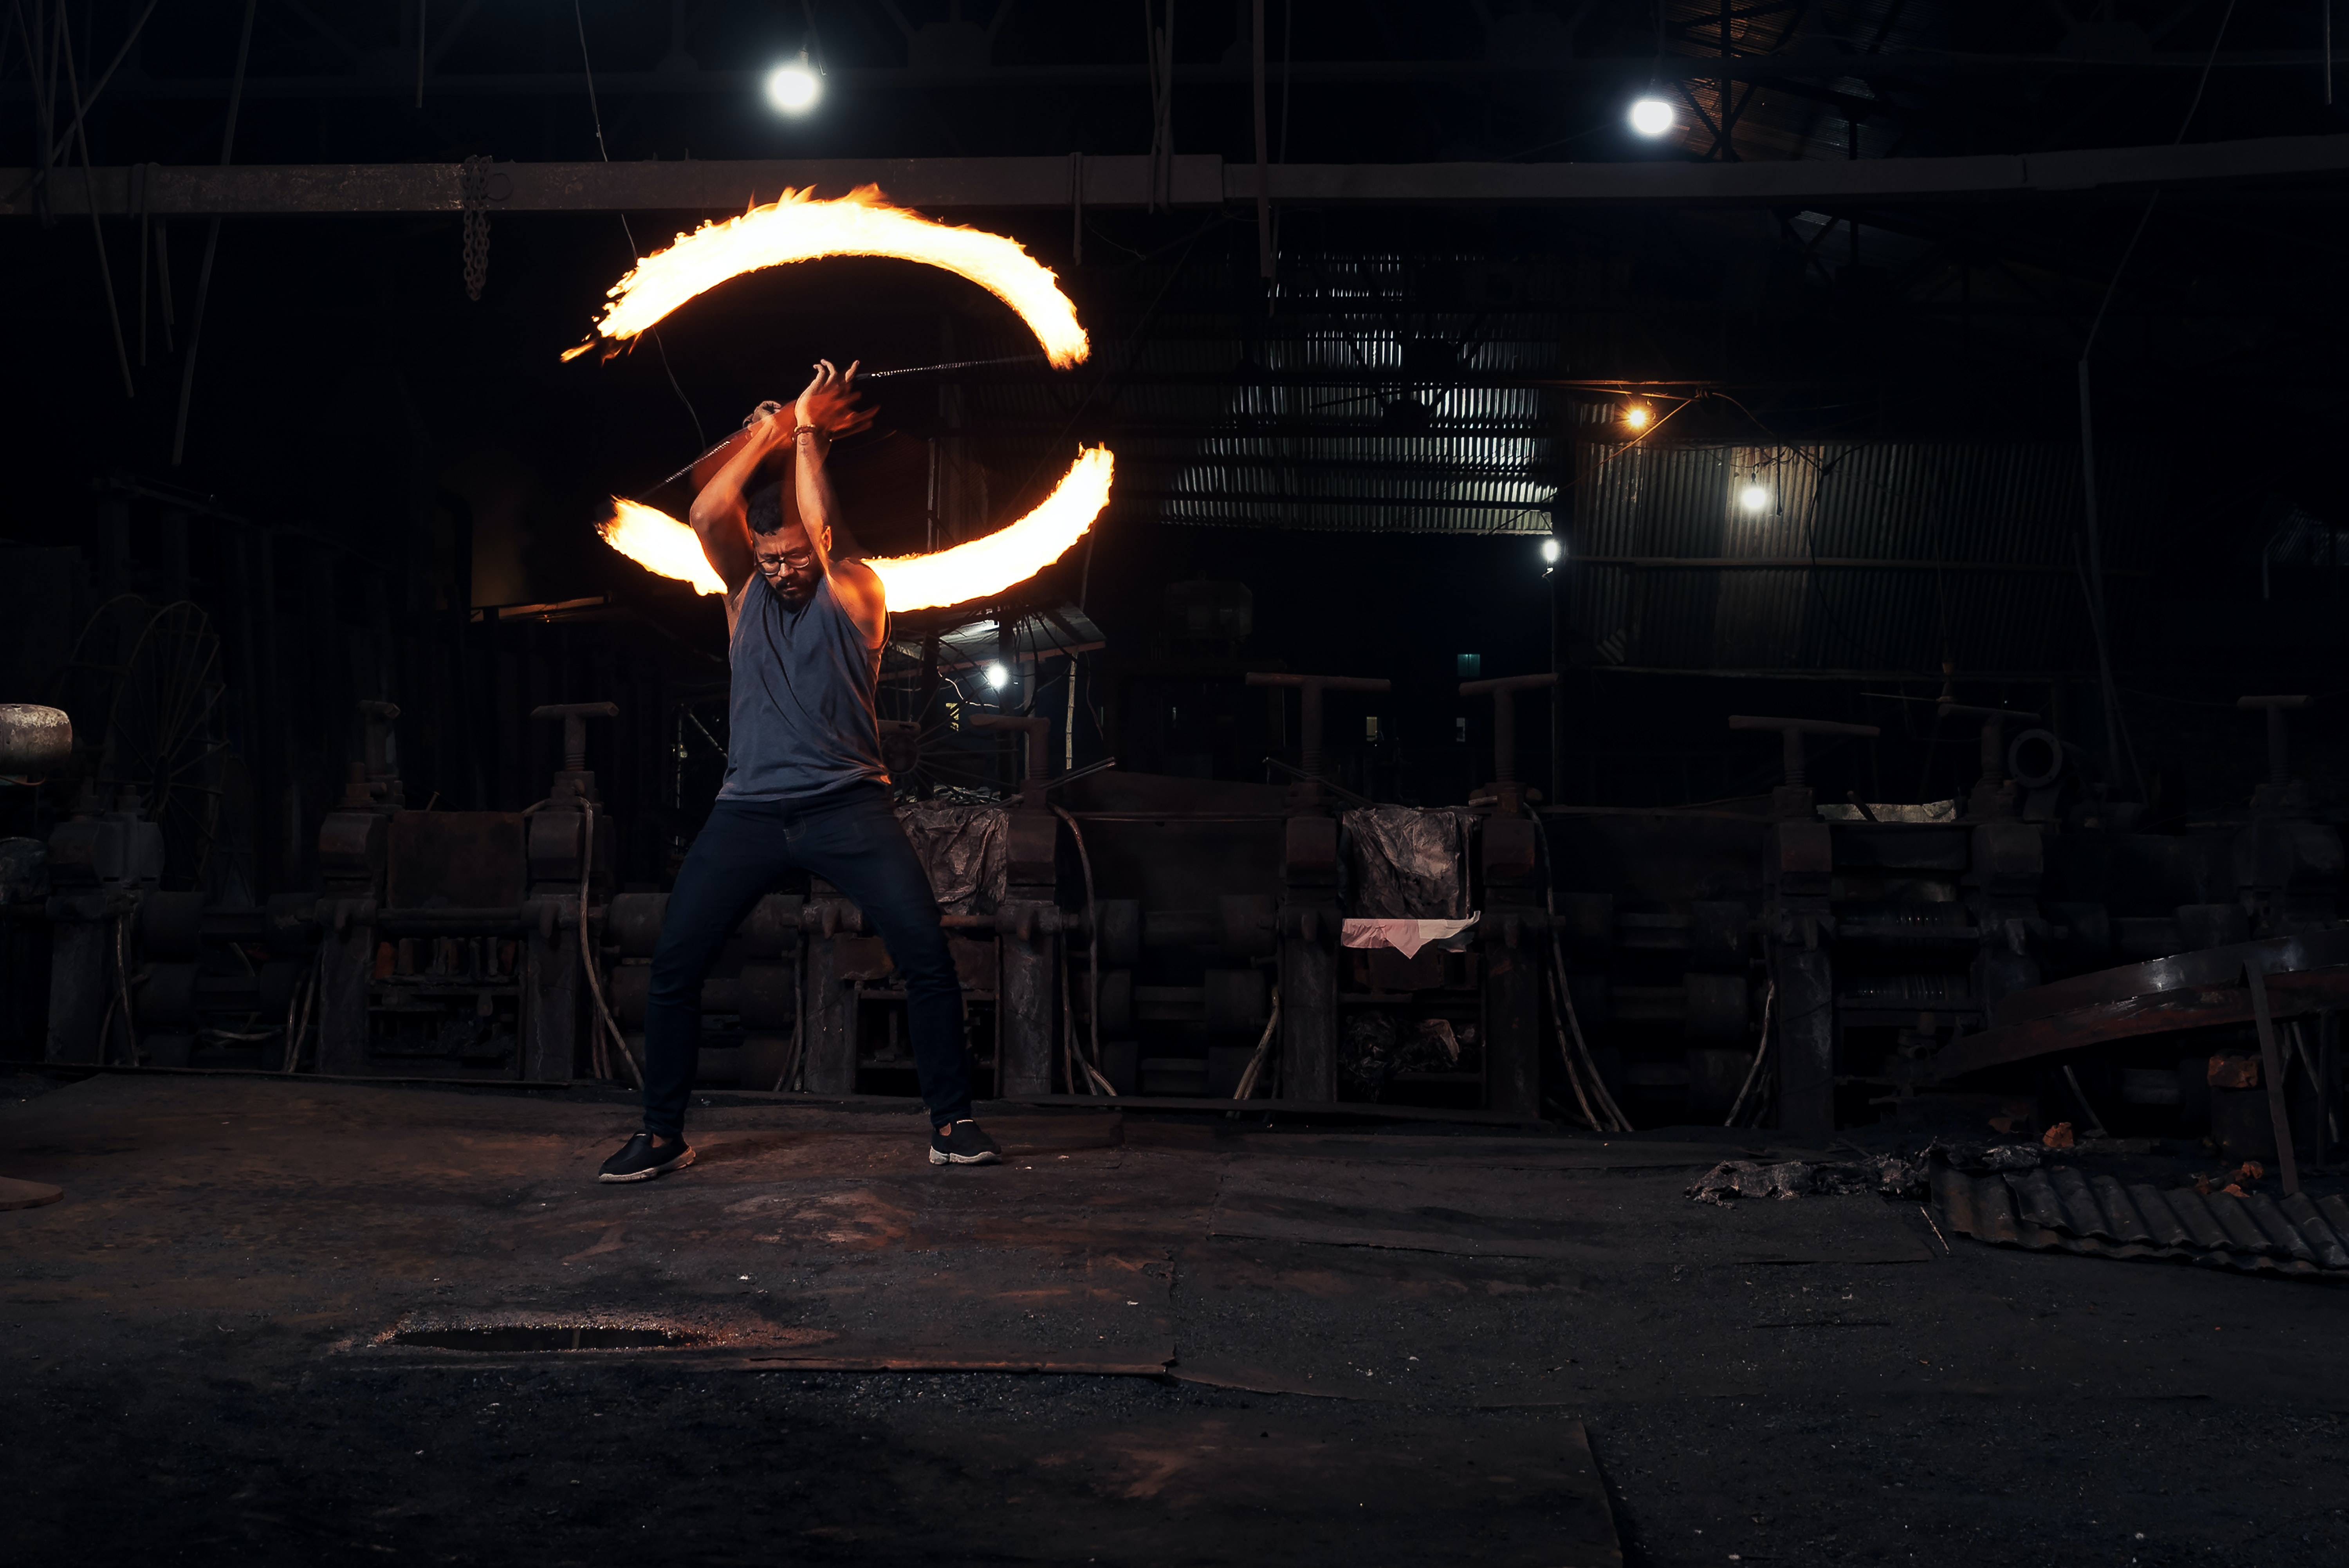 man fire dancing